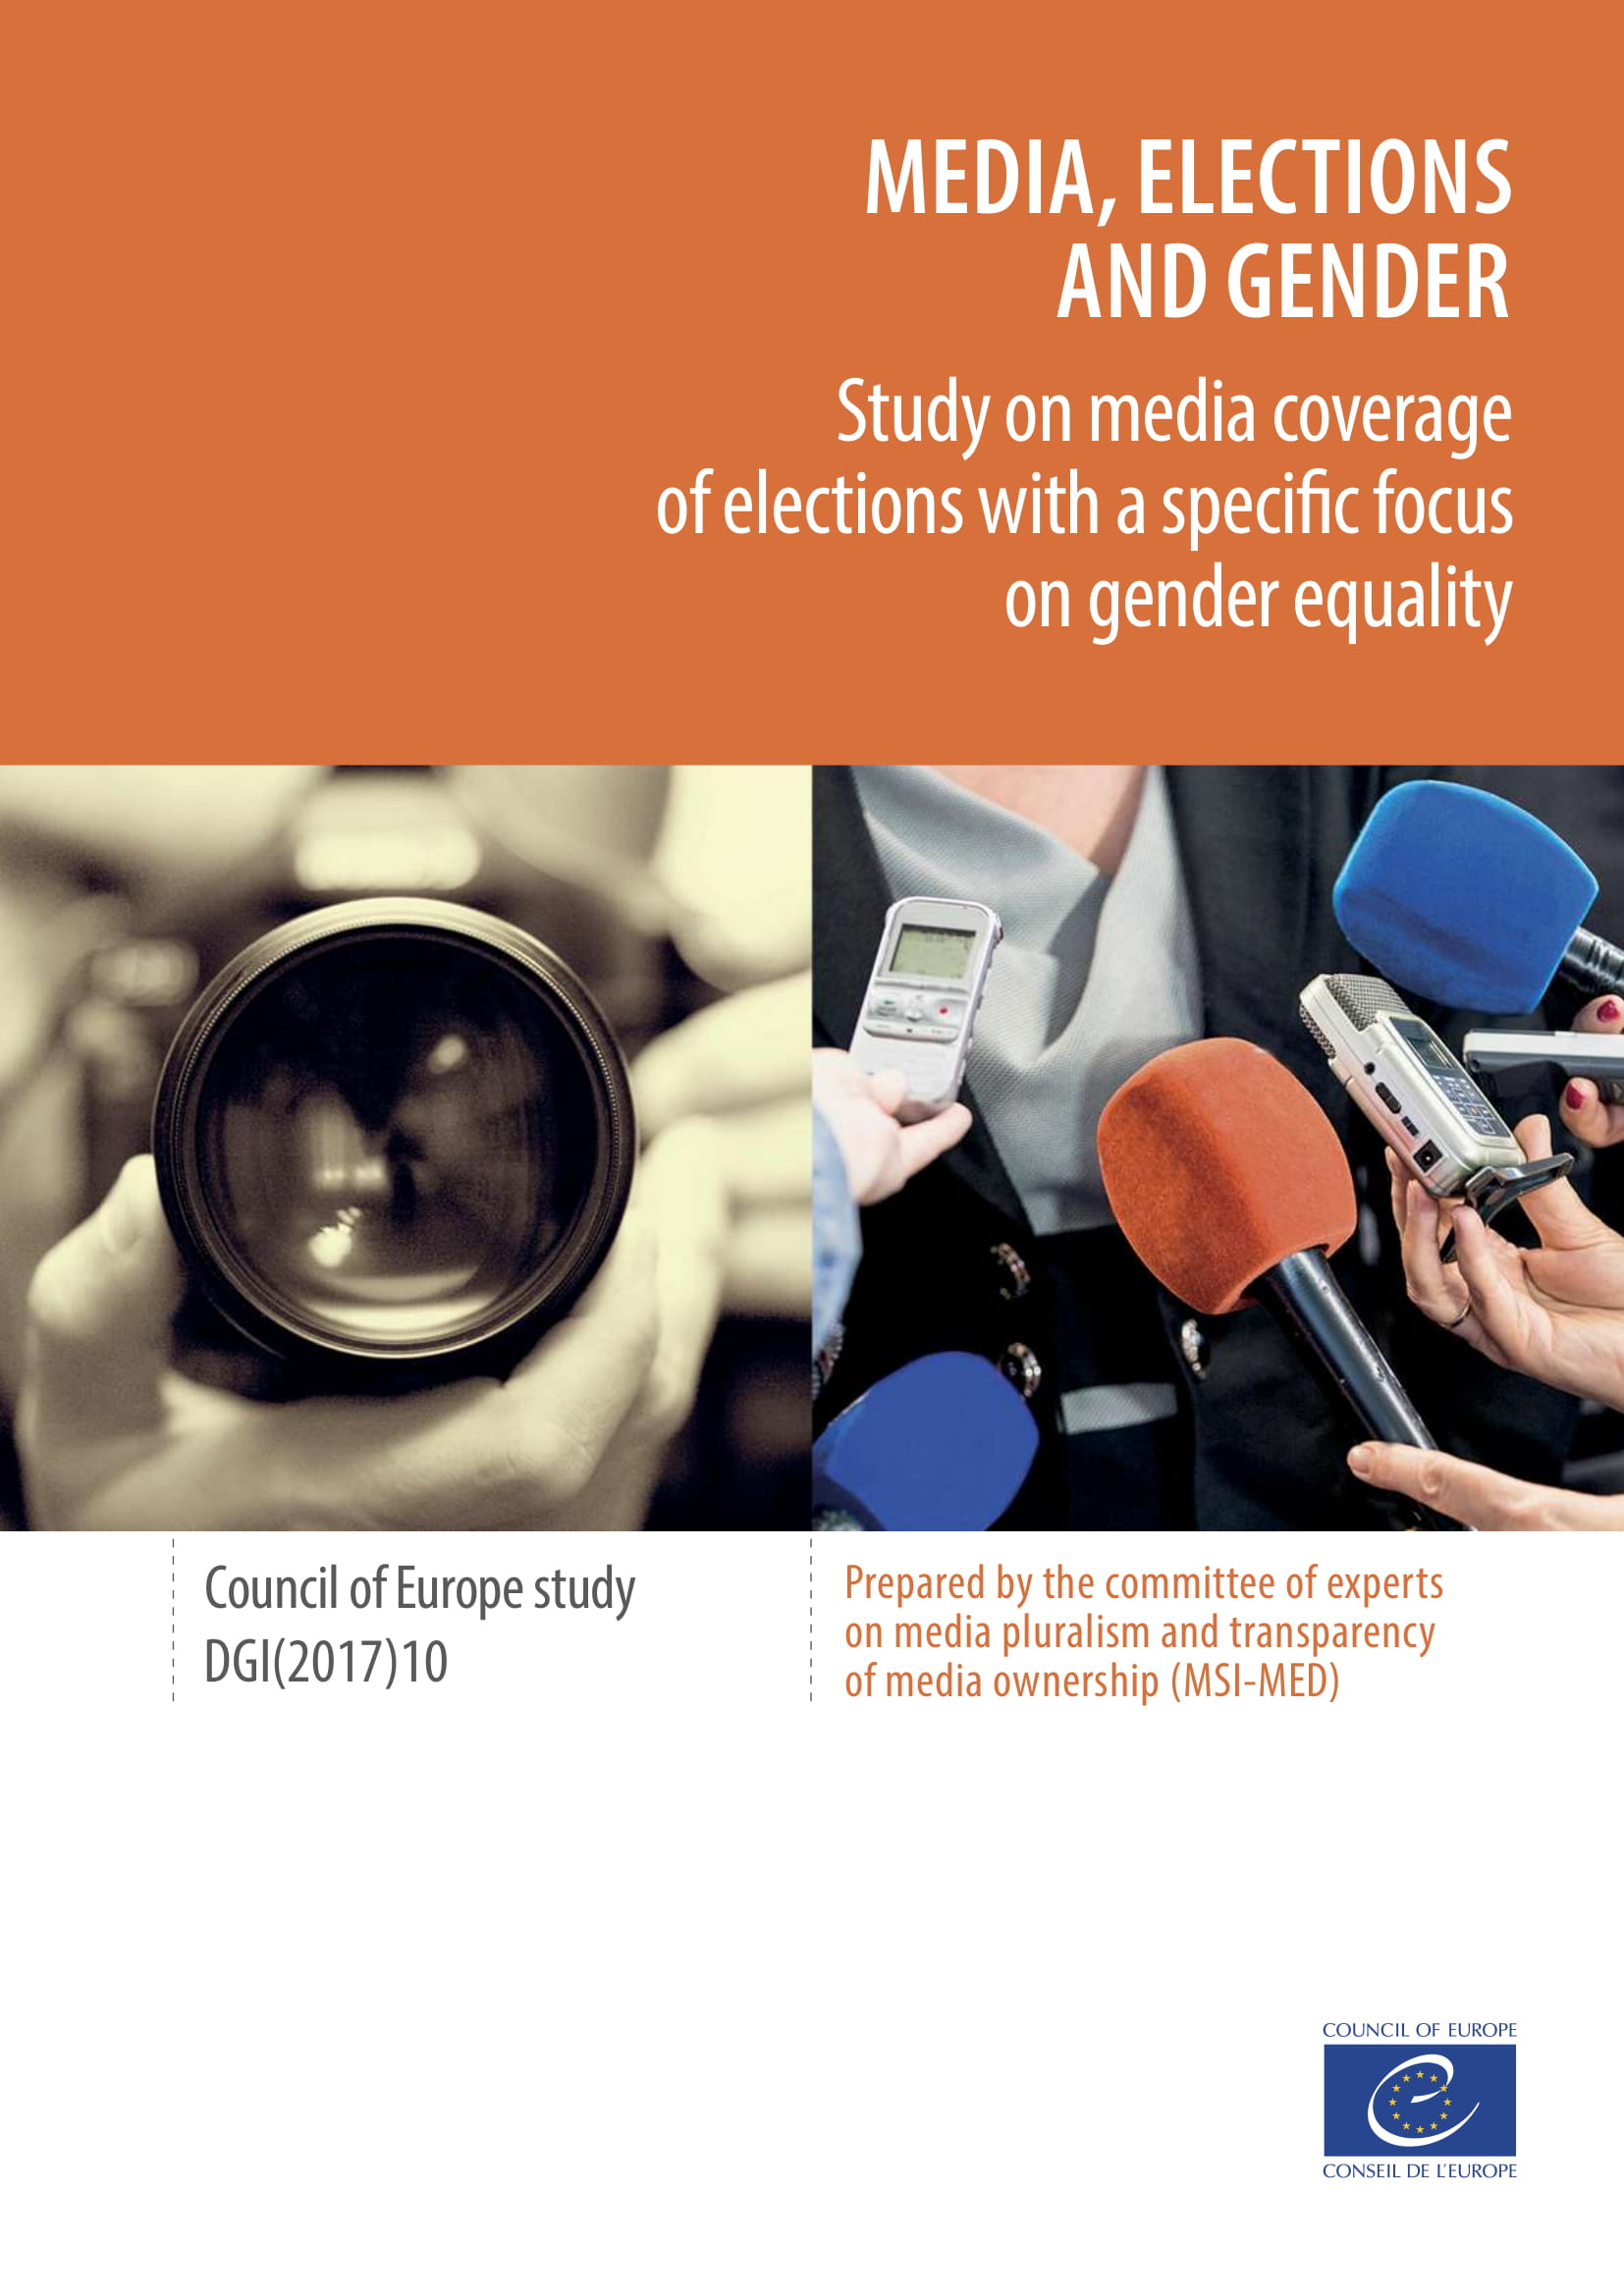 Media, Elections and Gender - Study on media coverage of elections with a specific focus on gender equality